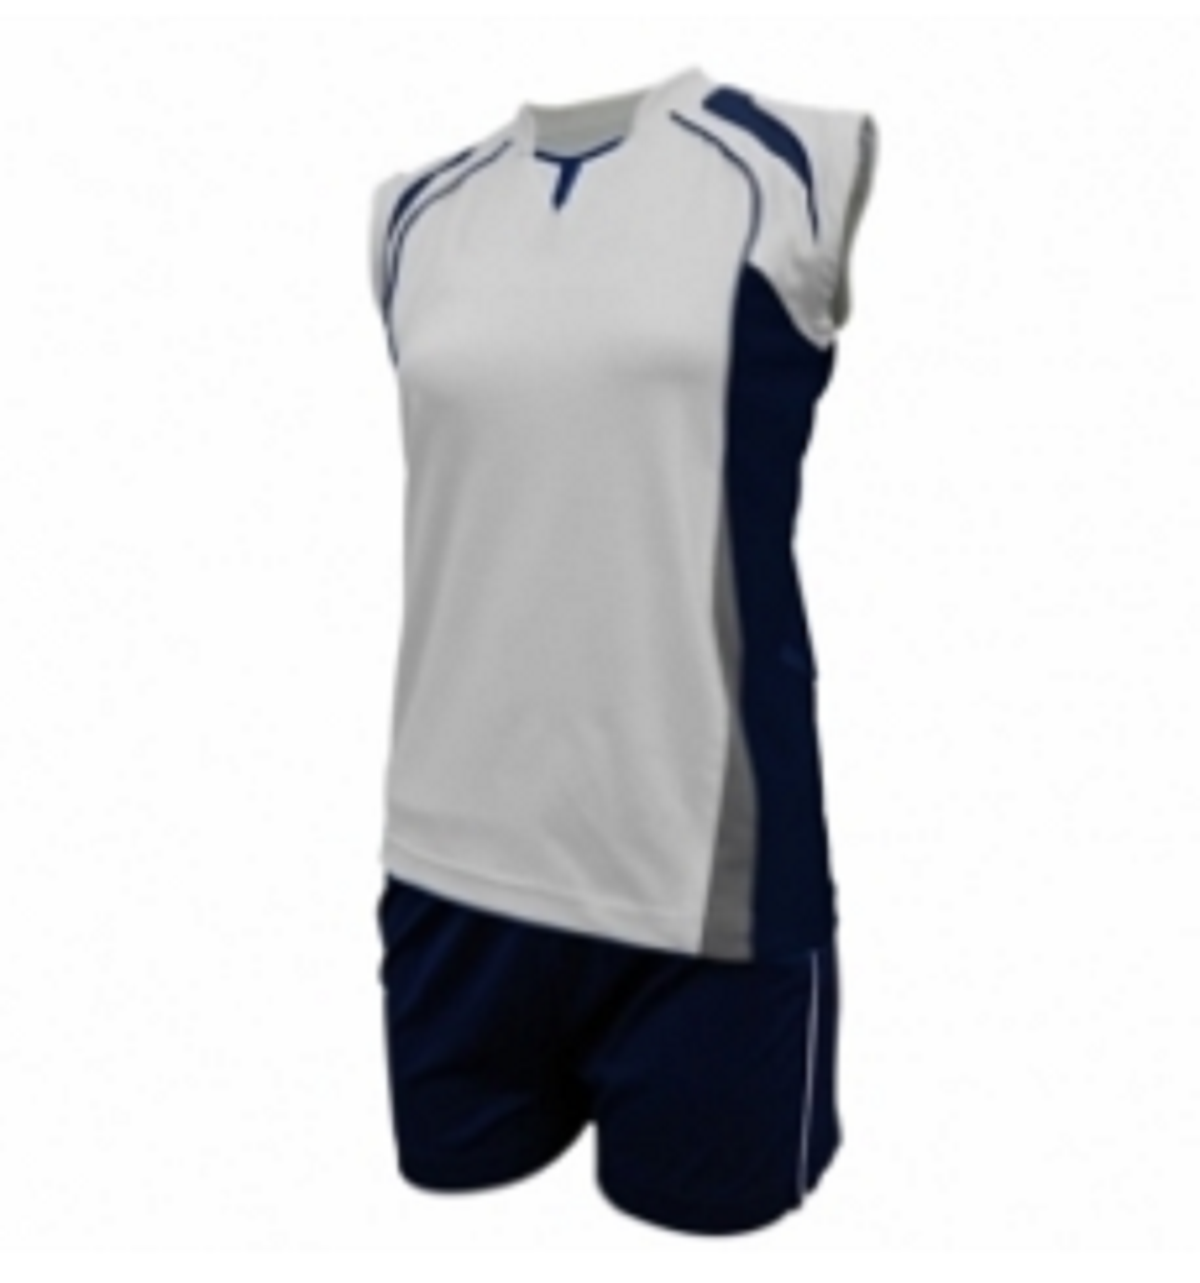 Volleyball Uniforms Grey & Black Model No TSI­5807